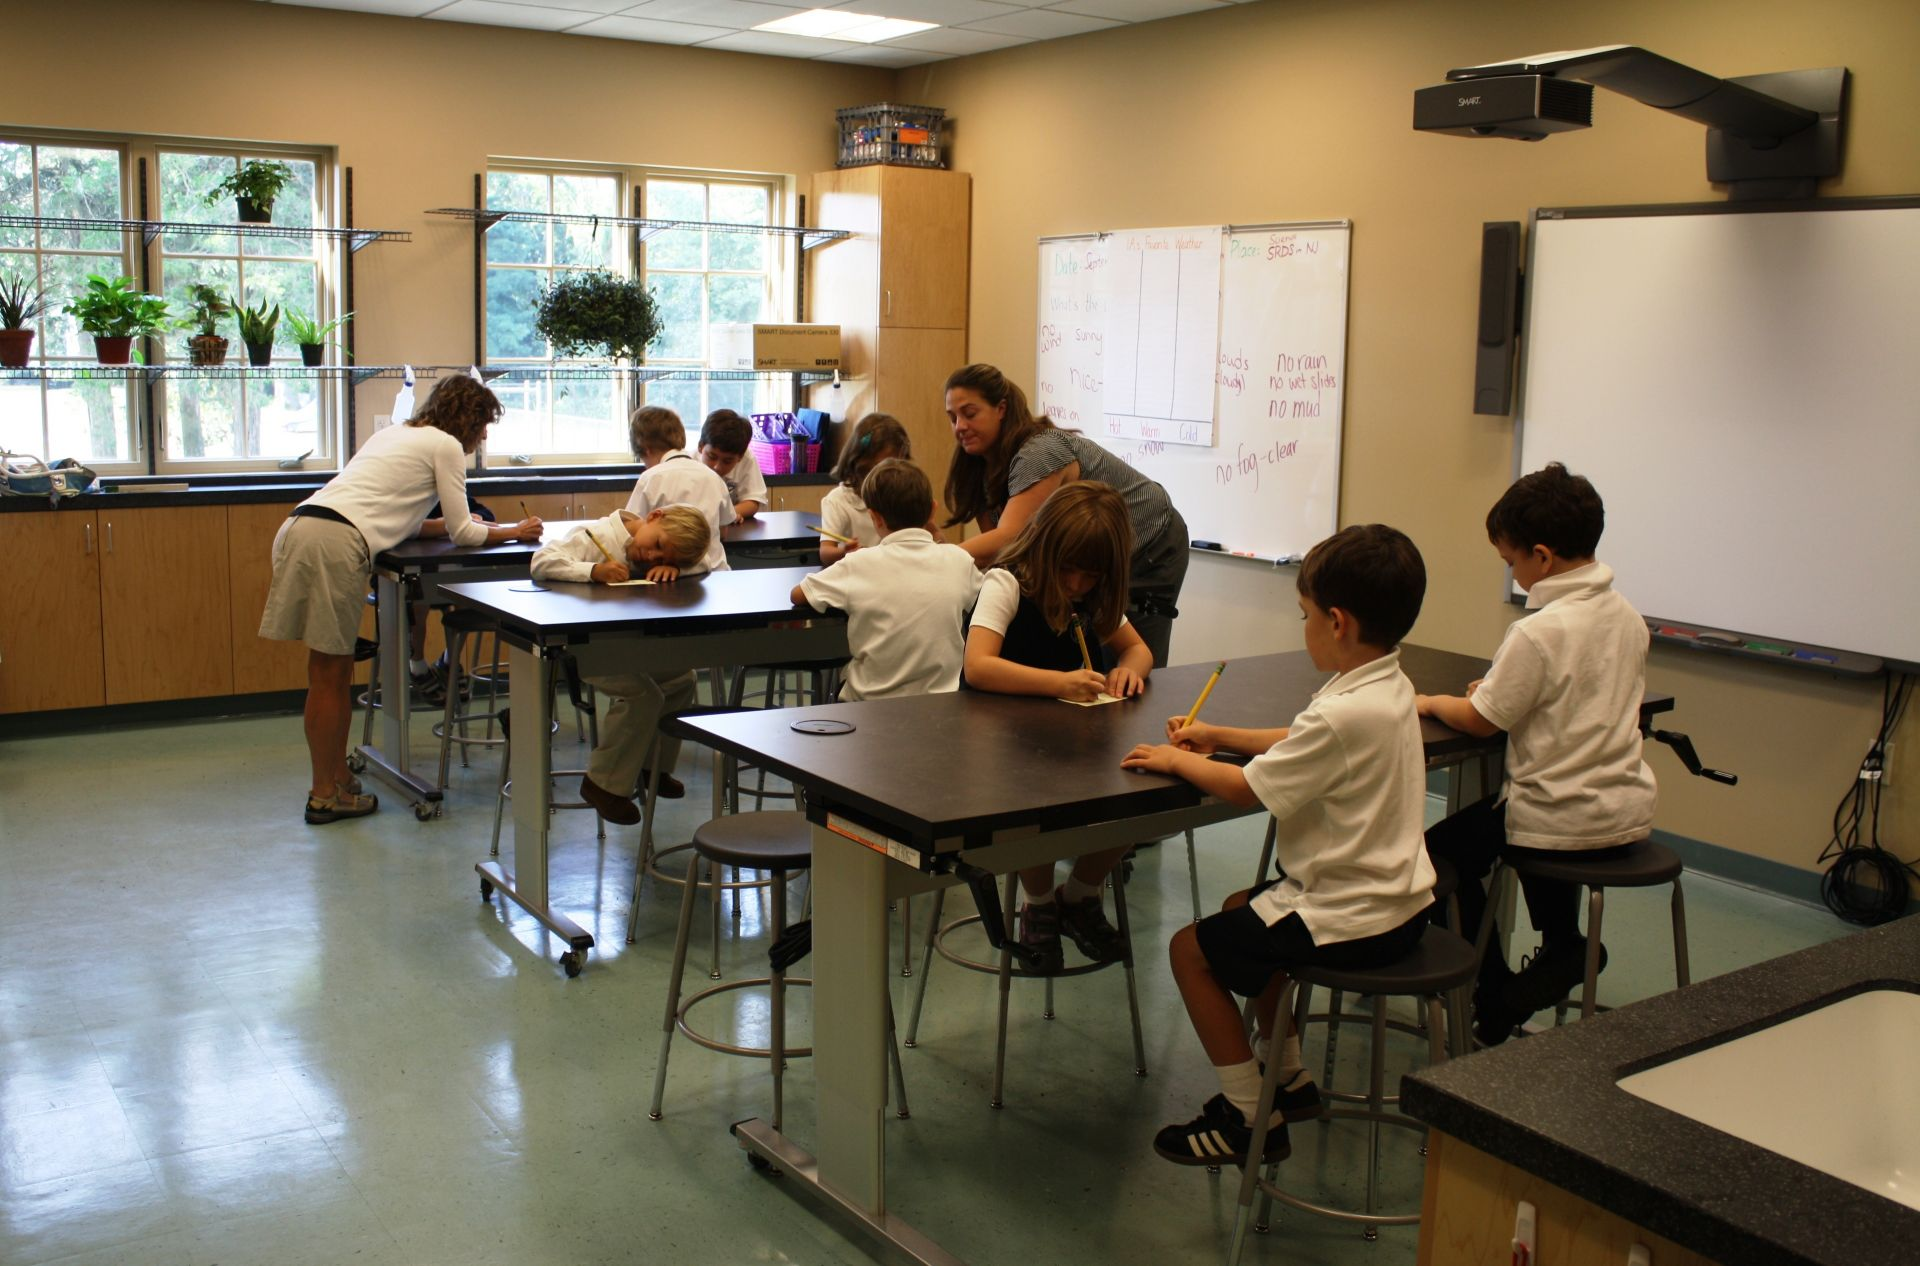 The fully equipped, state-of-the-art Lower School Science Lab engages students in hands-on, inquiry-based learning.